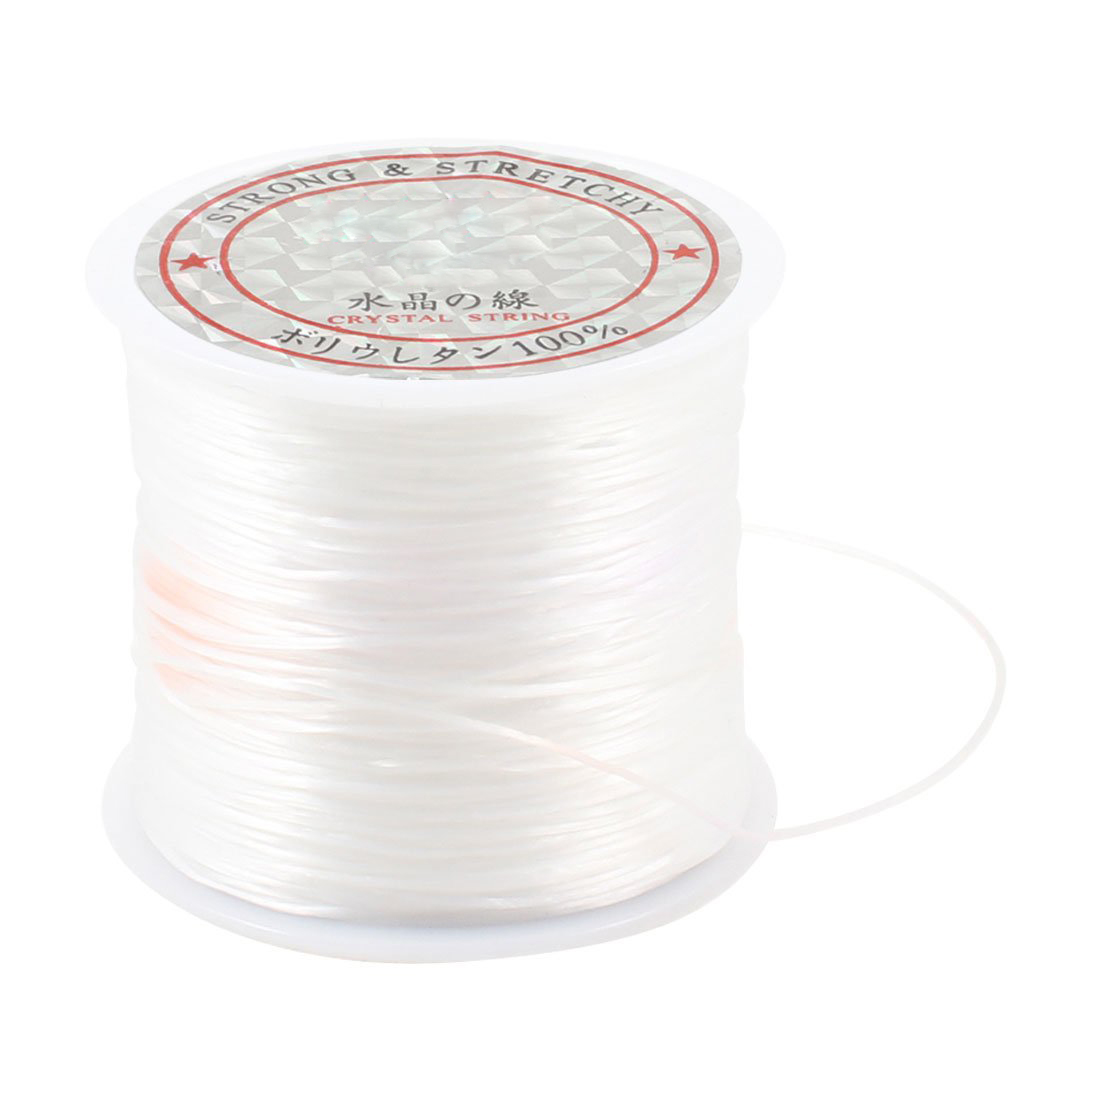 BMDT-White Elastic Stretchy Crystal Line Jewelry Beading Thread Spool 100 Meters